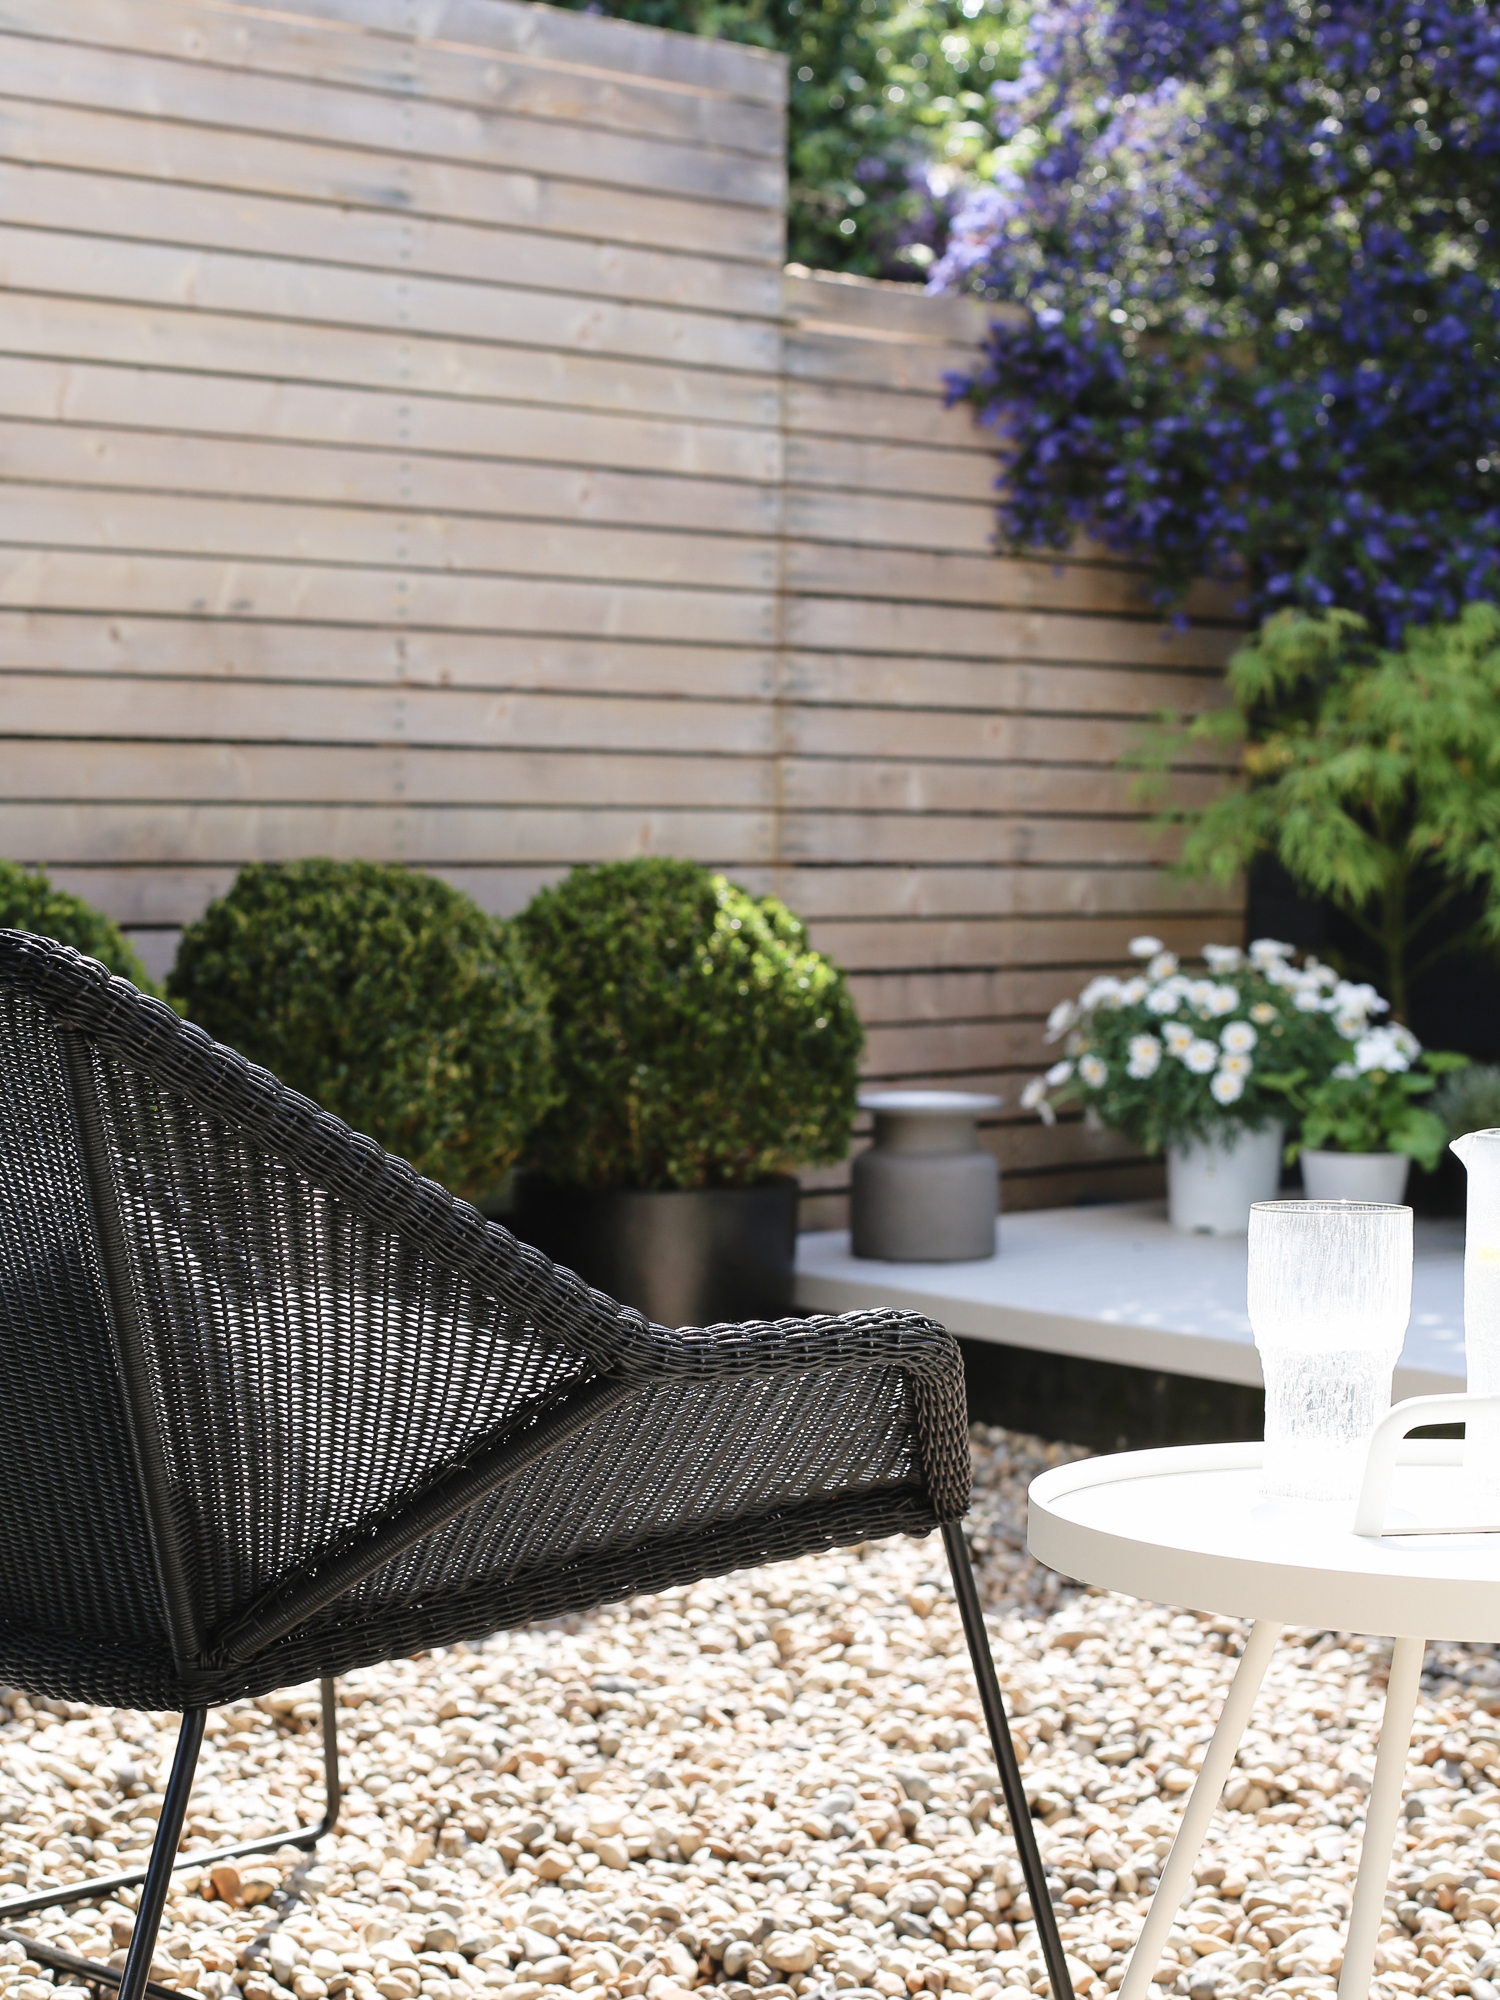 Cane-line table and outdoor chair | Design Hunter